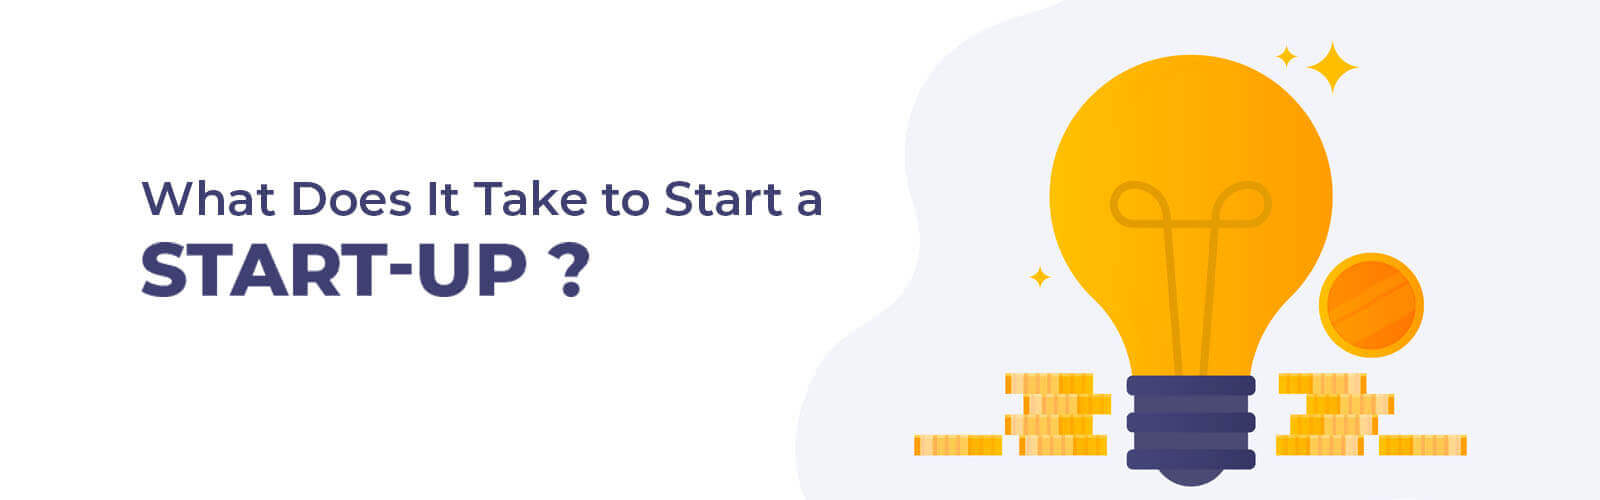 What Does It Take to Start a Start-up?